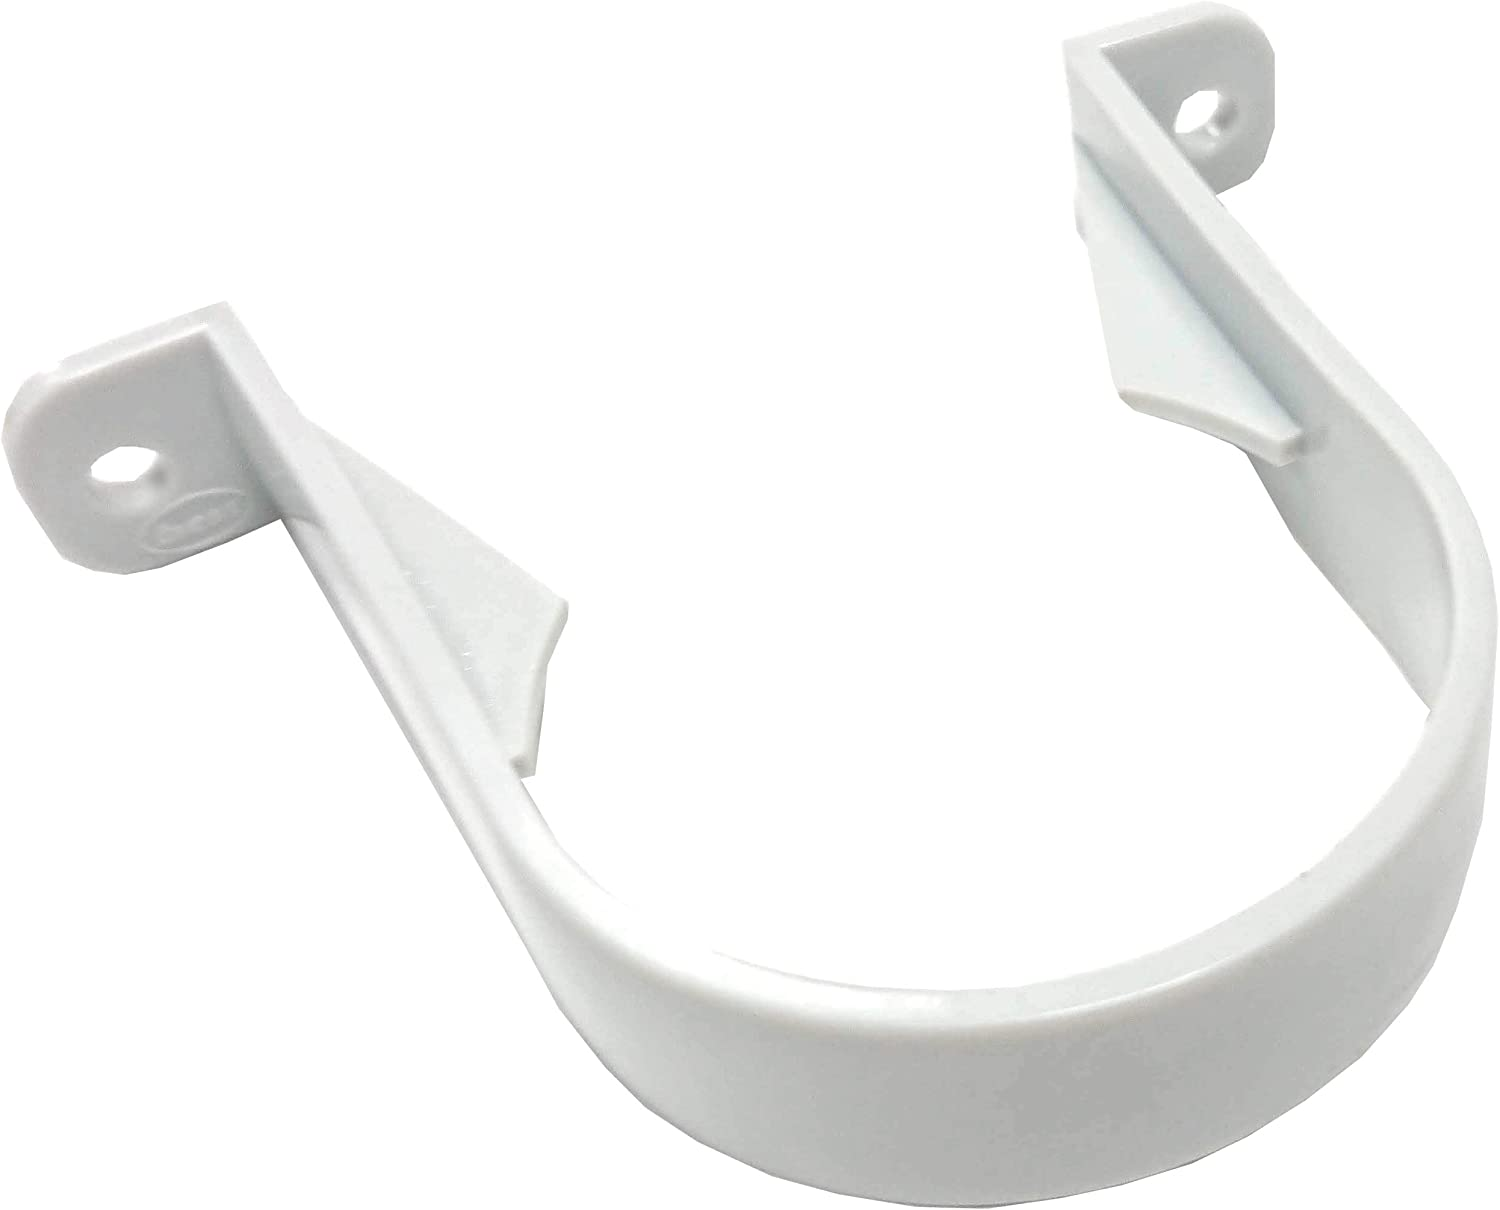 GREY Bracket,fixing for 68MM Downpipe RWC1 Pack of 2 X Marshall Tufflex Pipe Clip